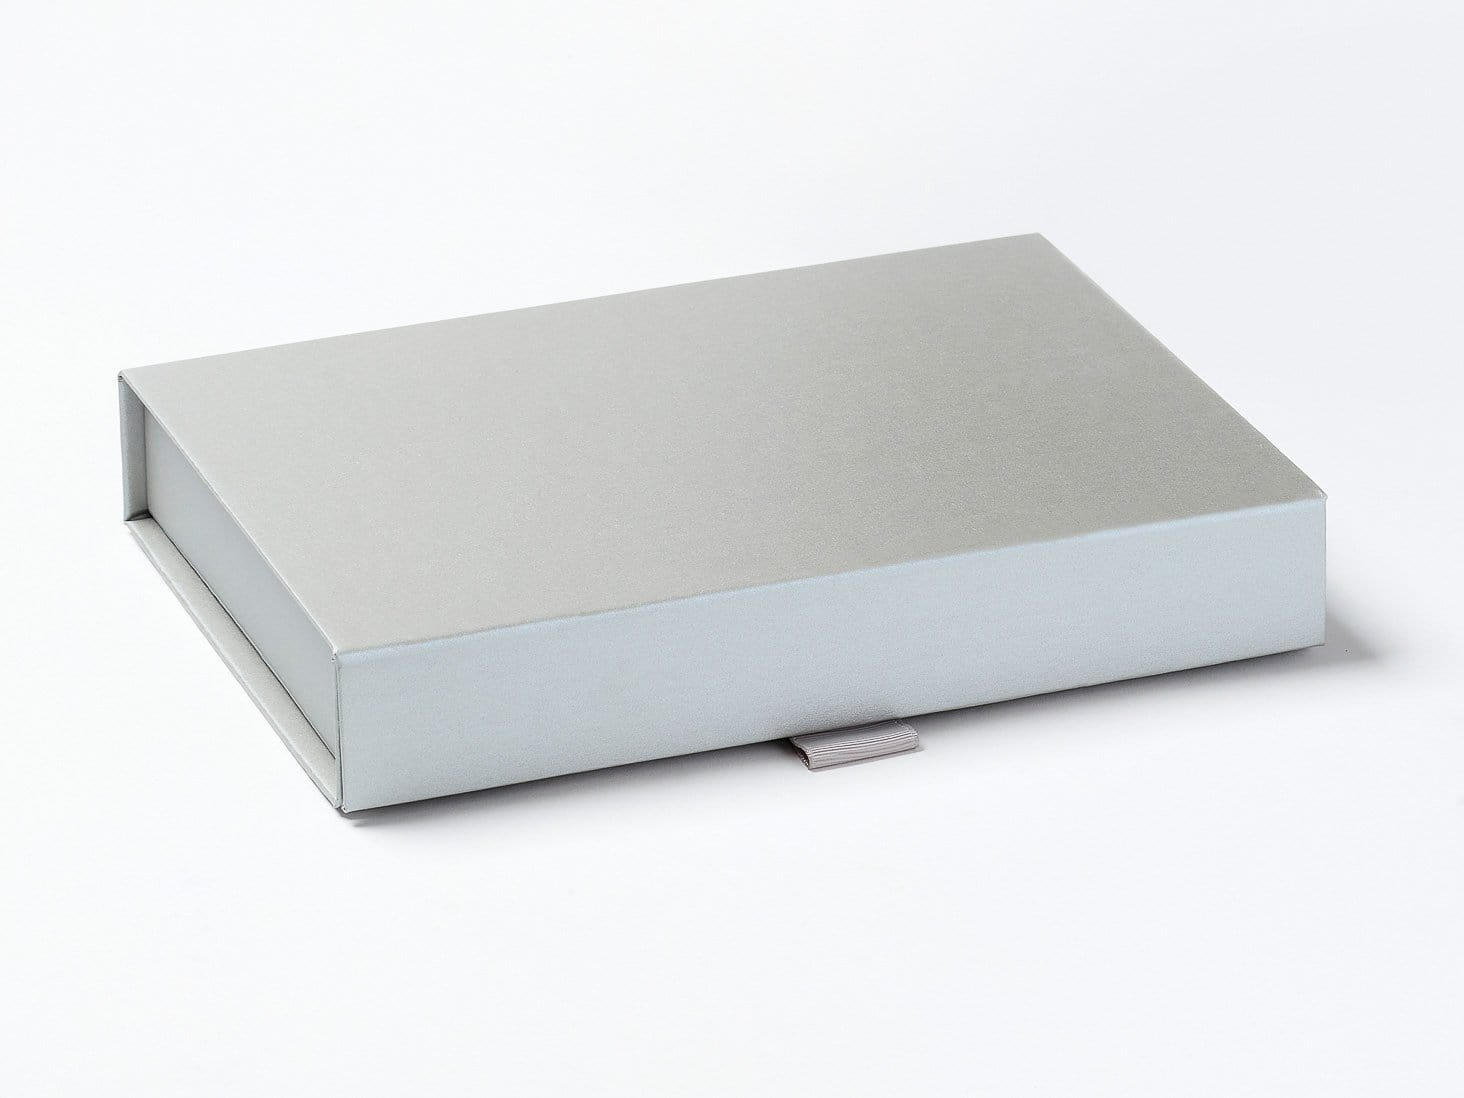 Silver A5 Shallow Gift Box Assembled